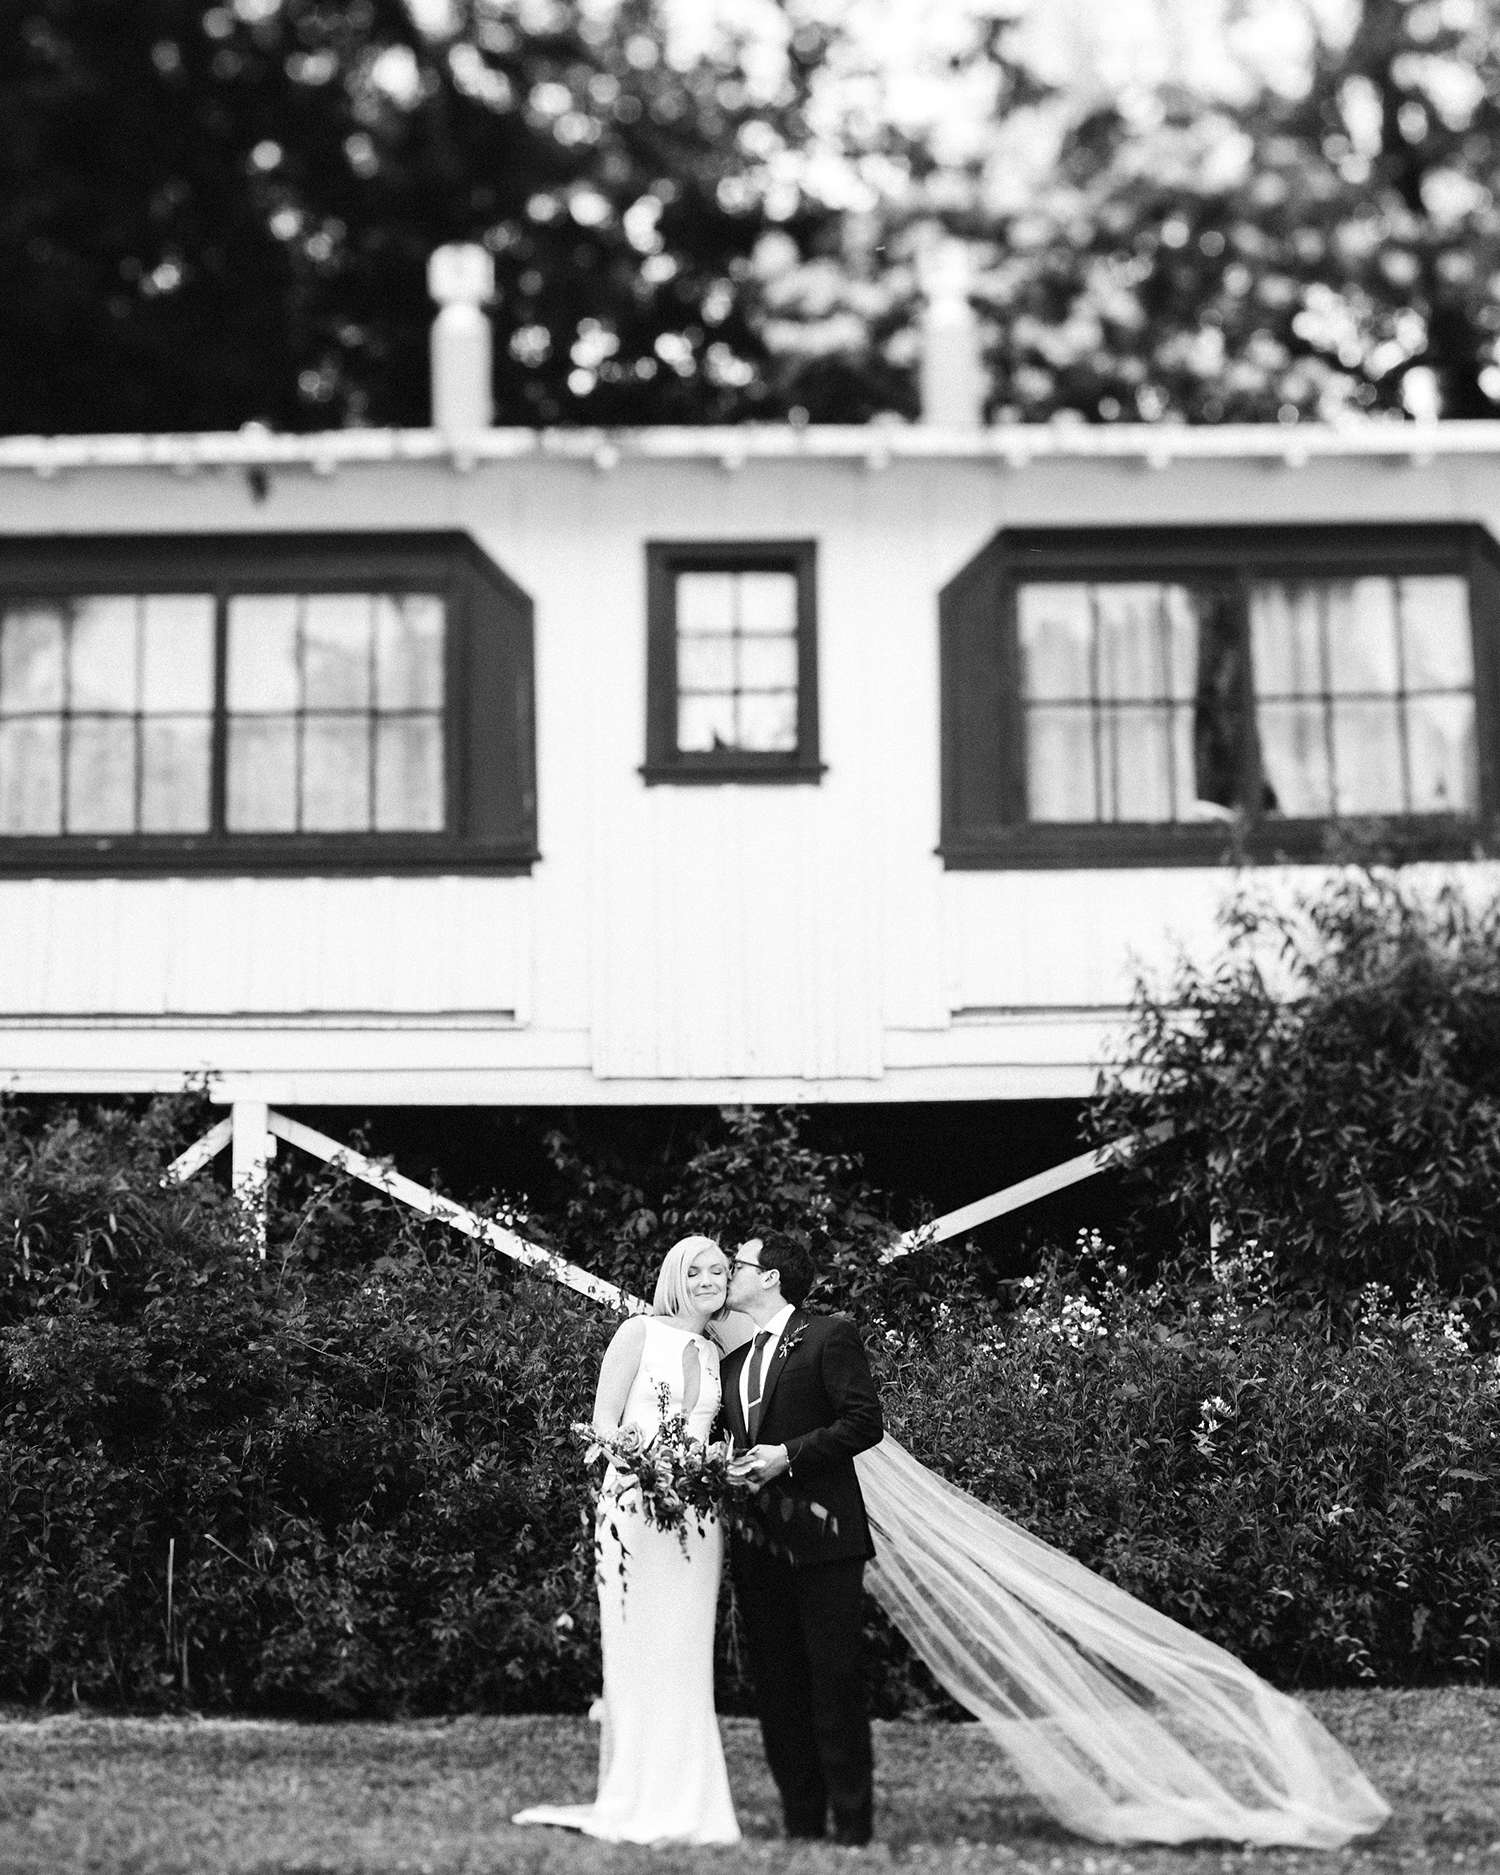 kendall jackson wedding couple black and white